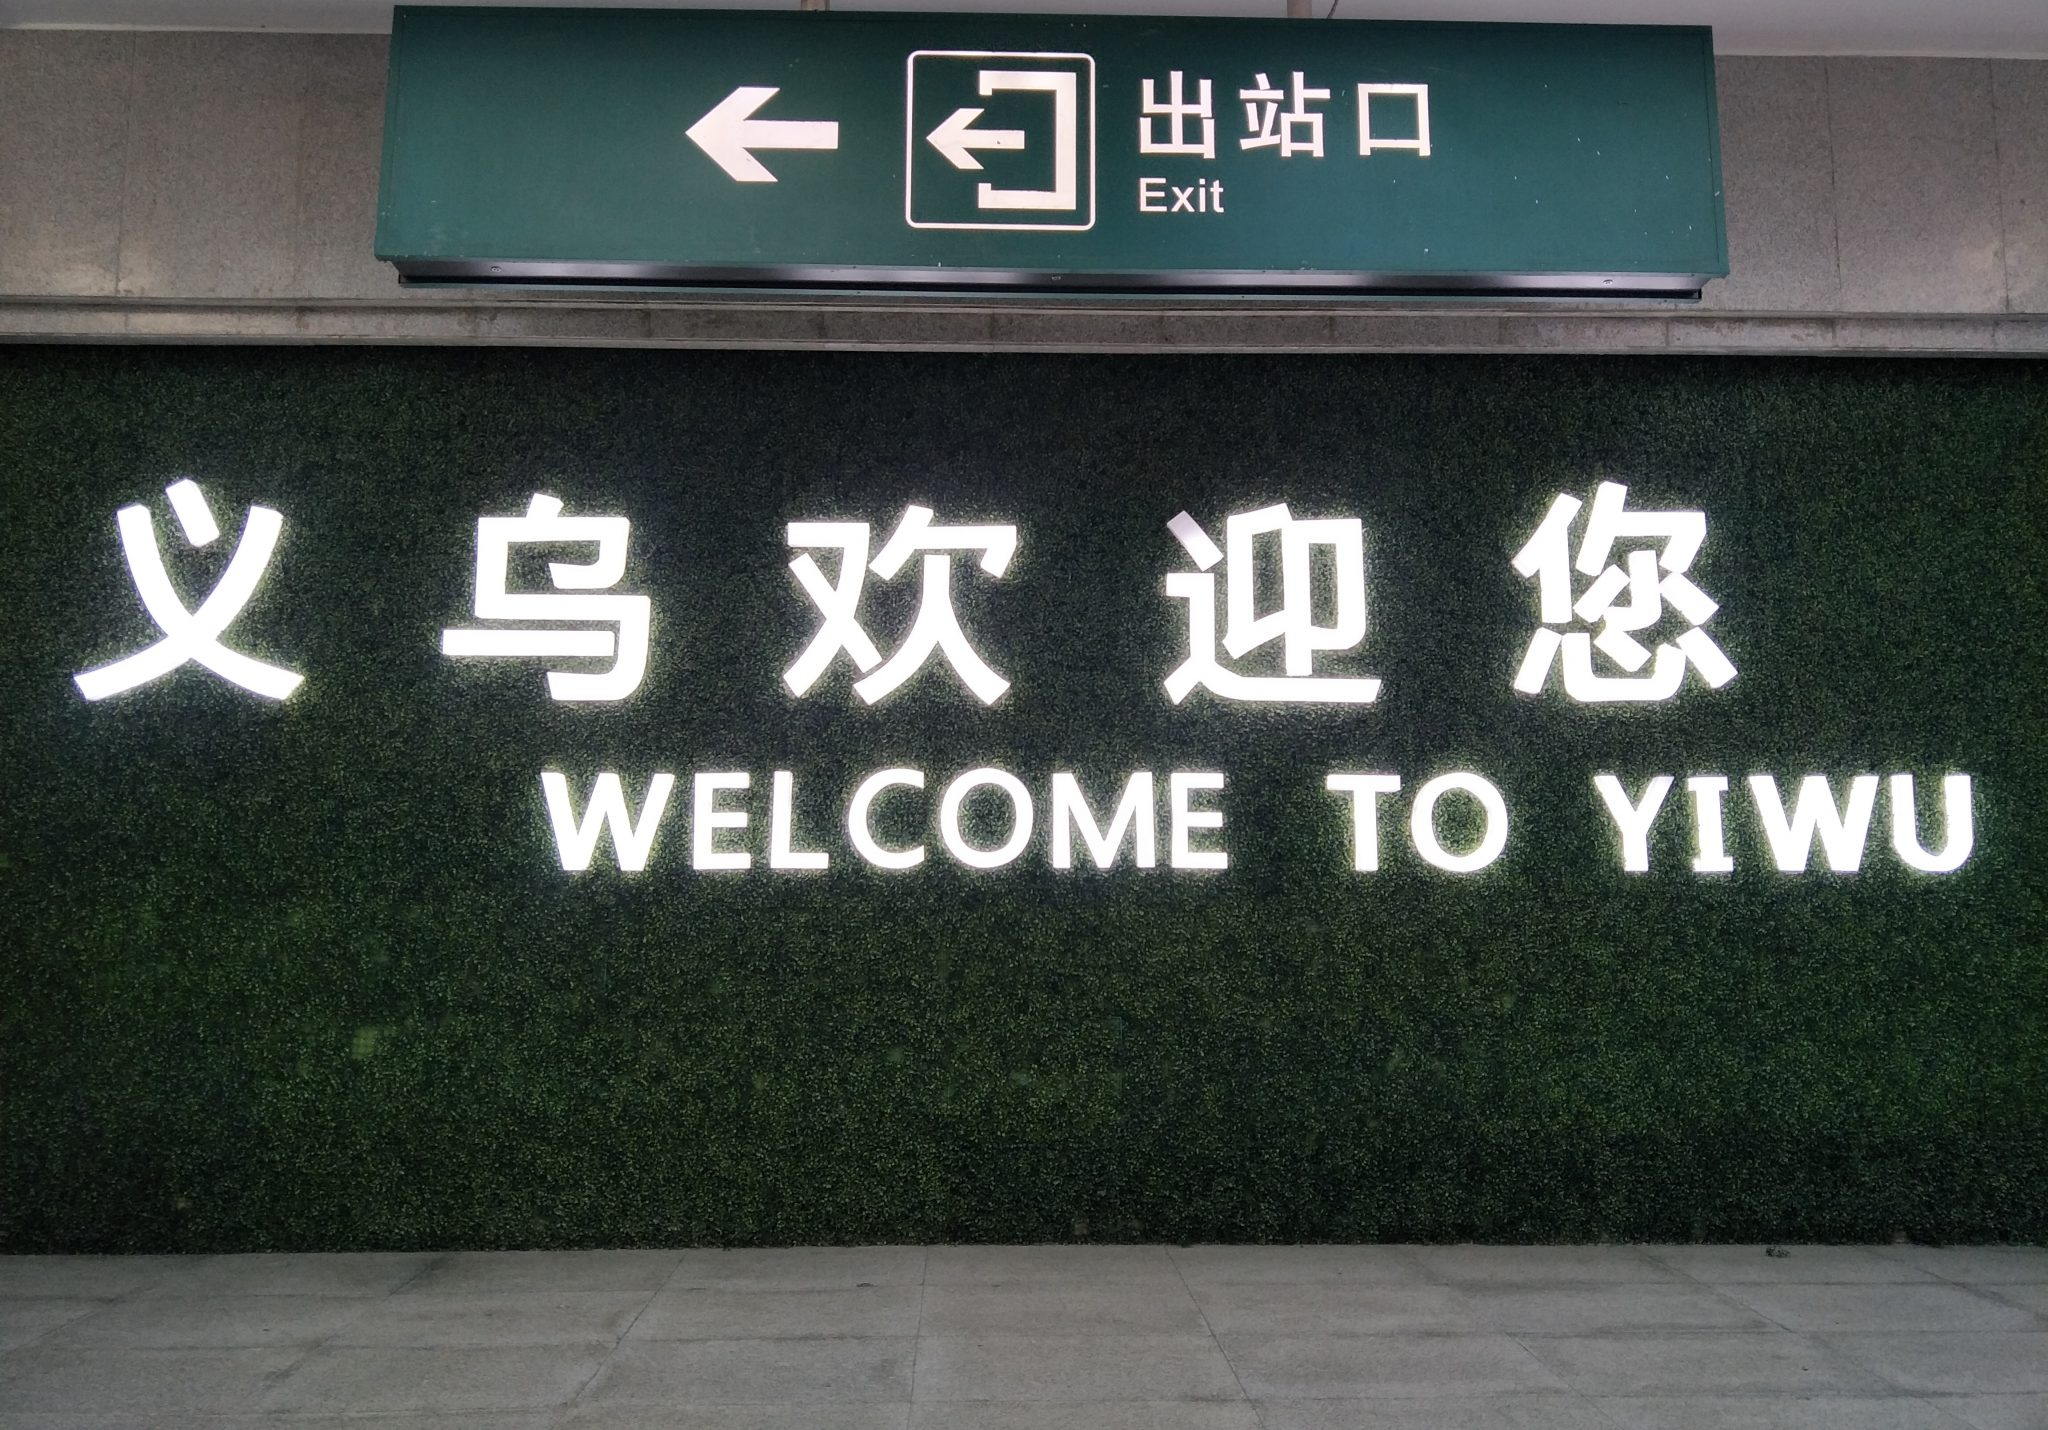 Welcome to Yiwu